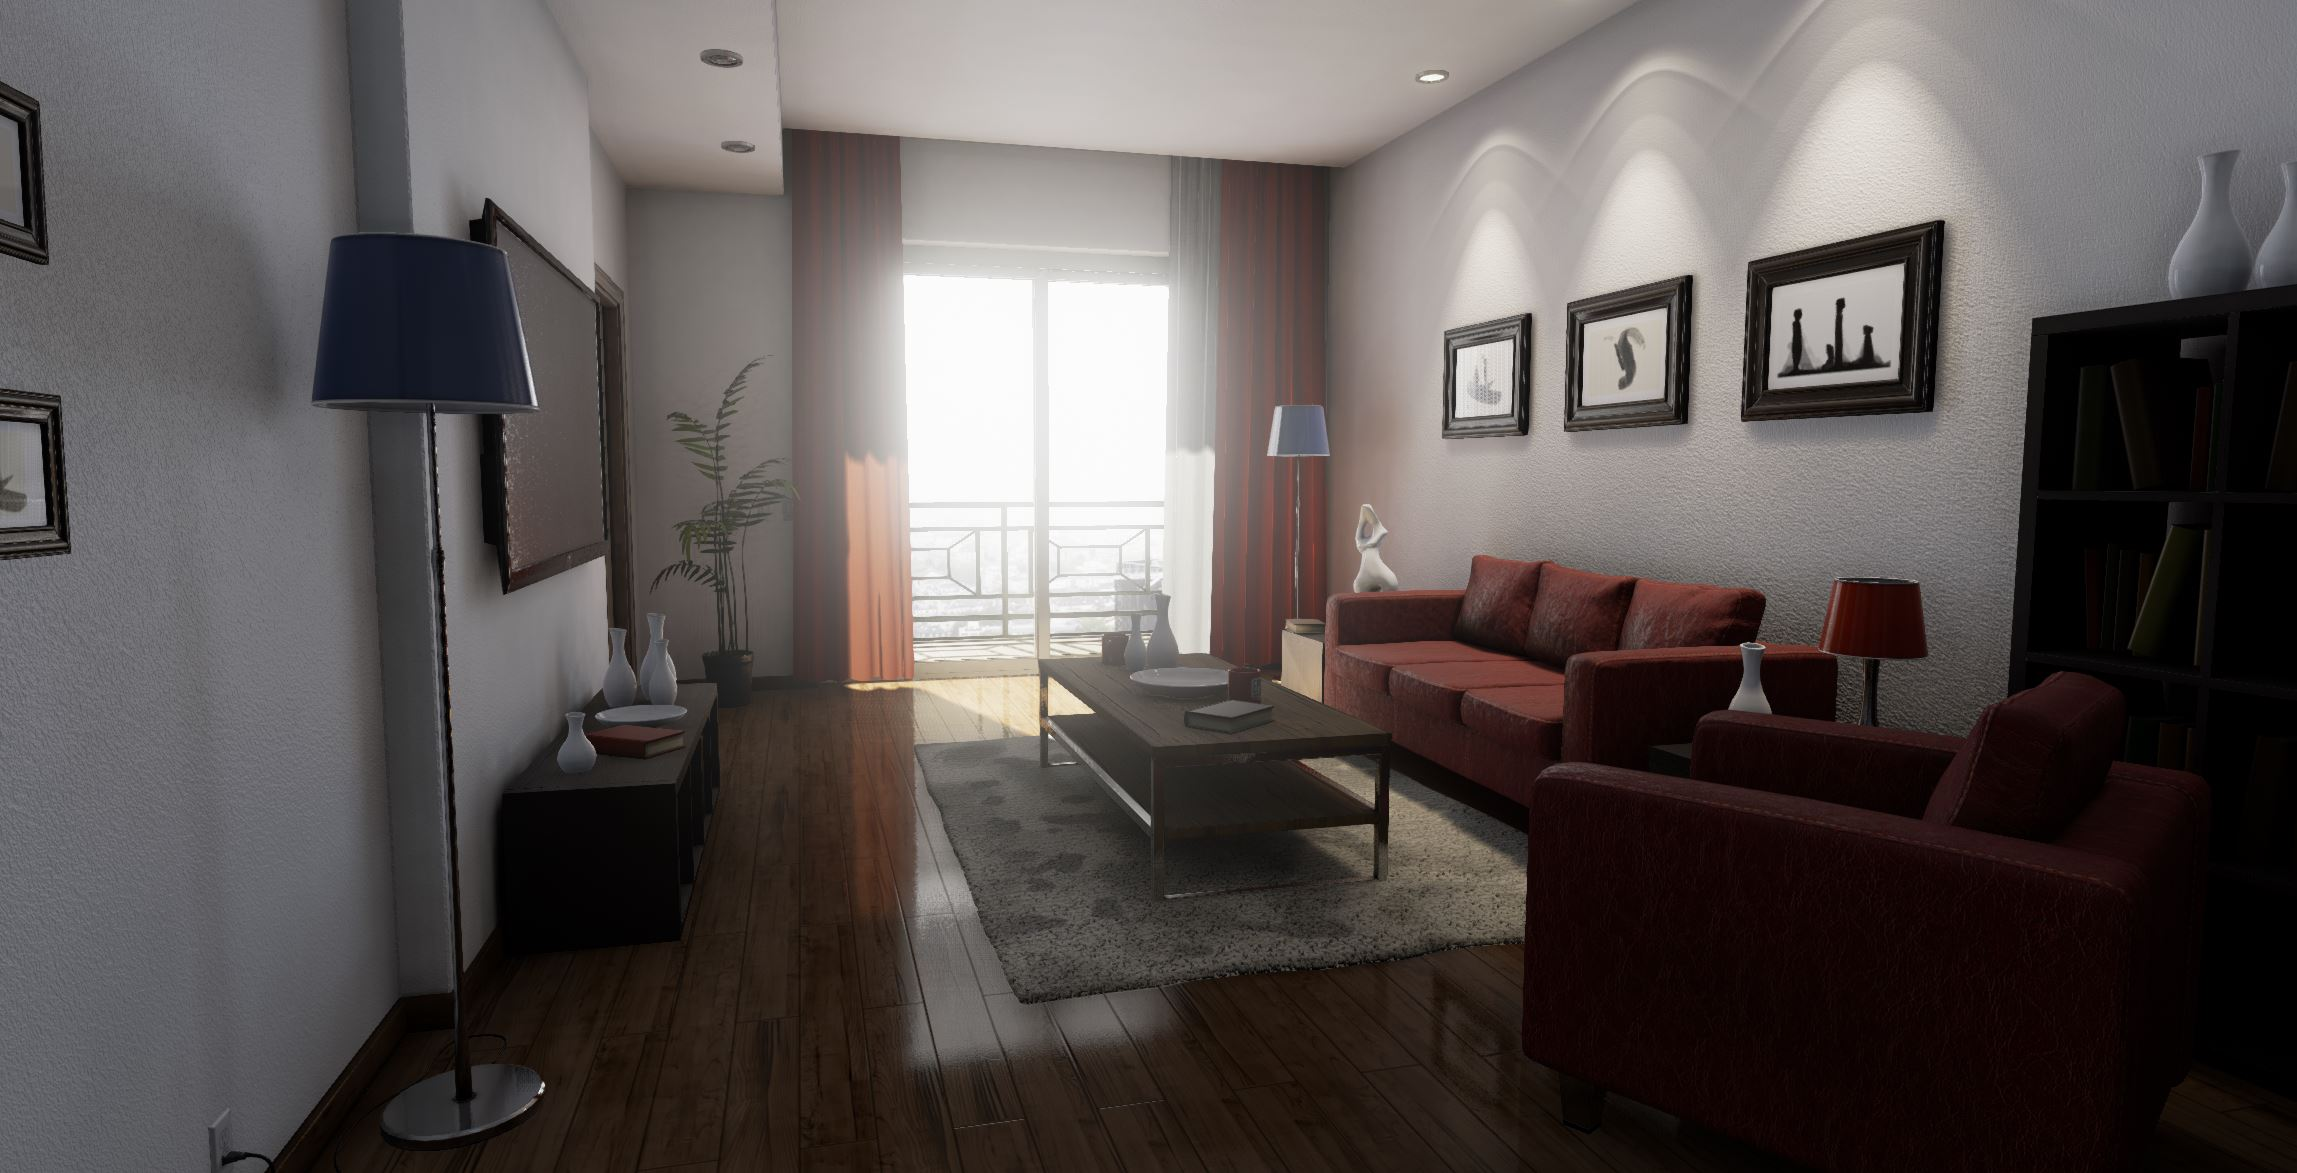 Inside The Unreal Engine 4 5 Source Code Cppdepend Blog